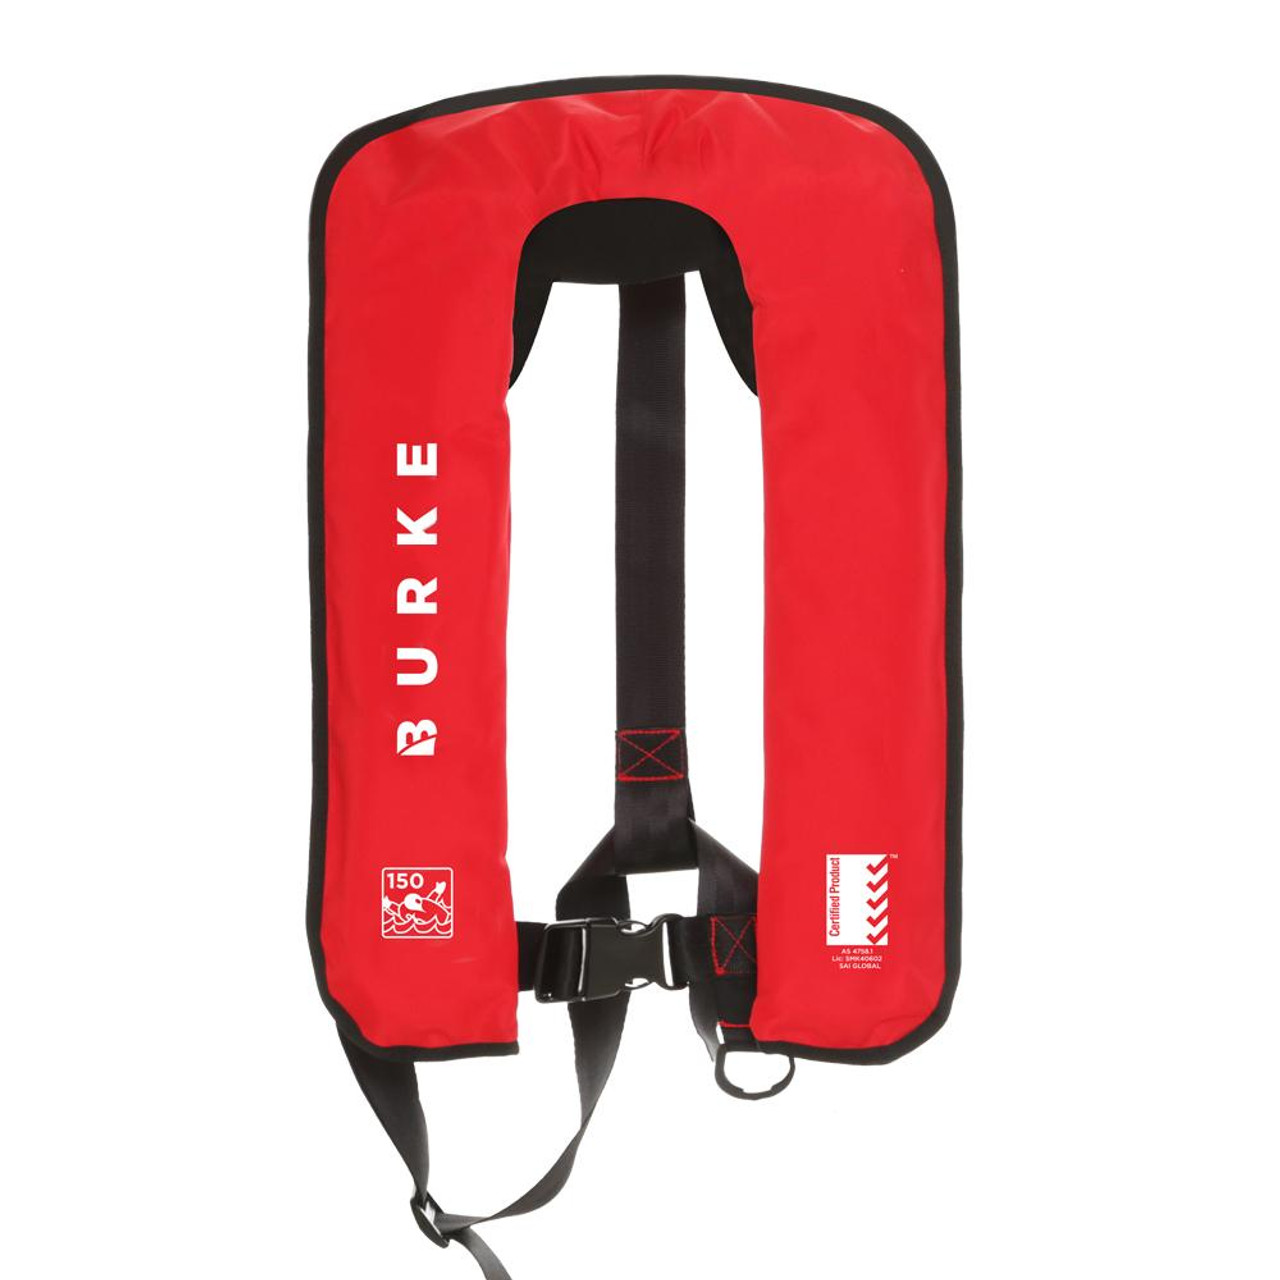 Burke Lifejacket Red 150N Manual Inflatable PFD